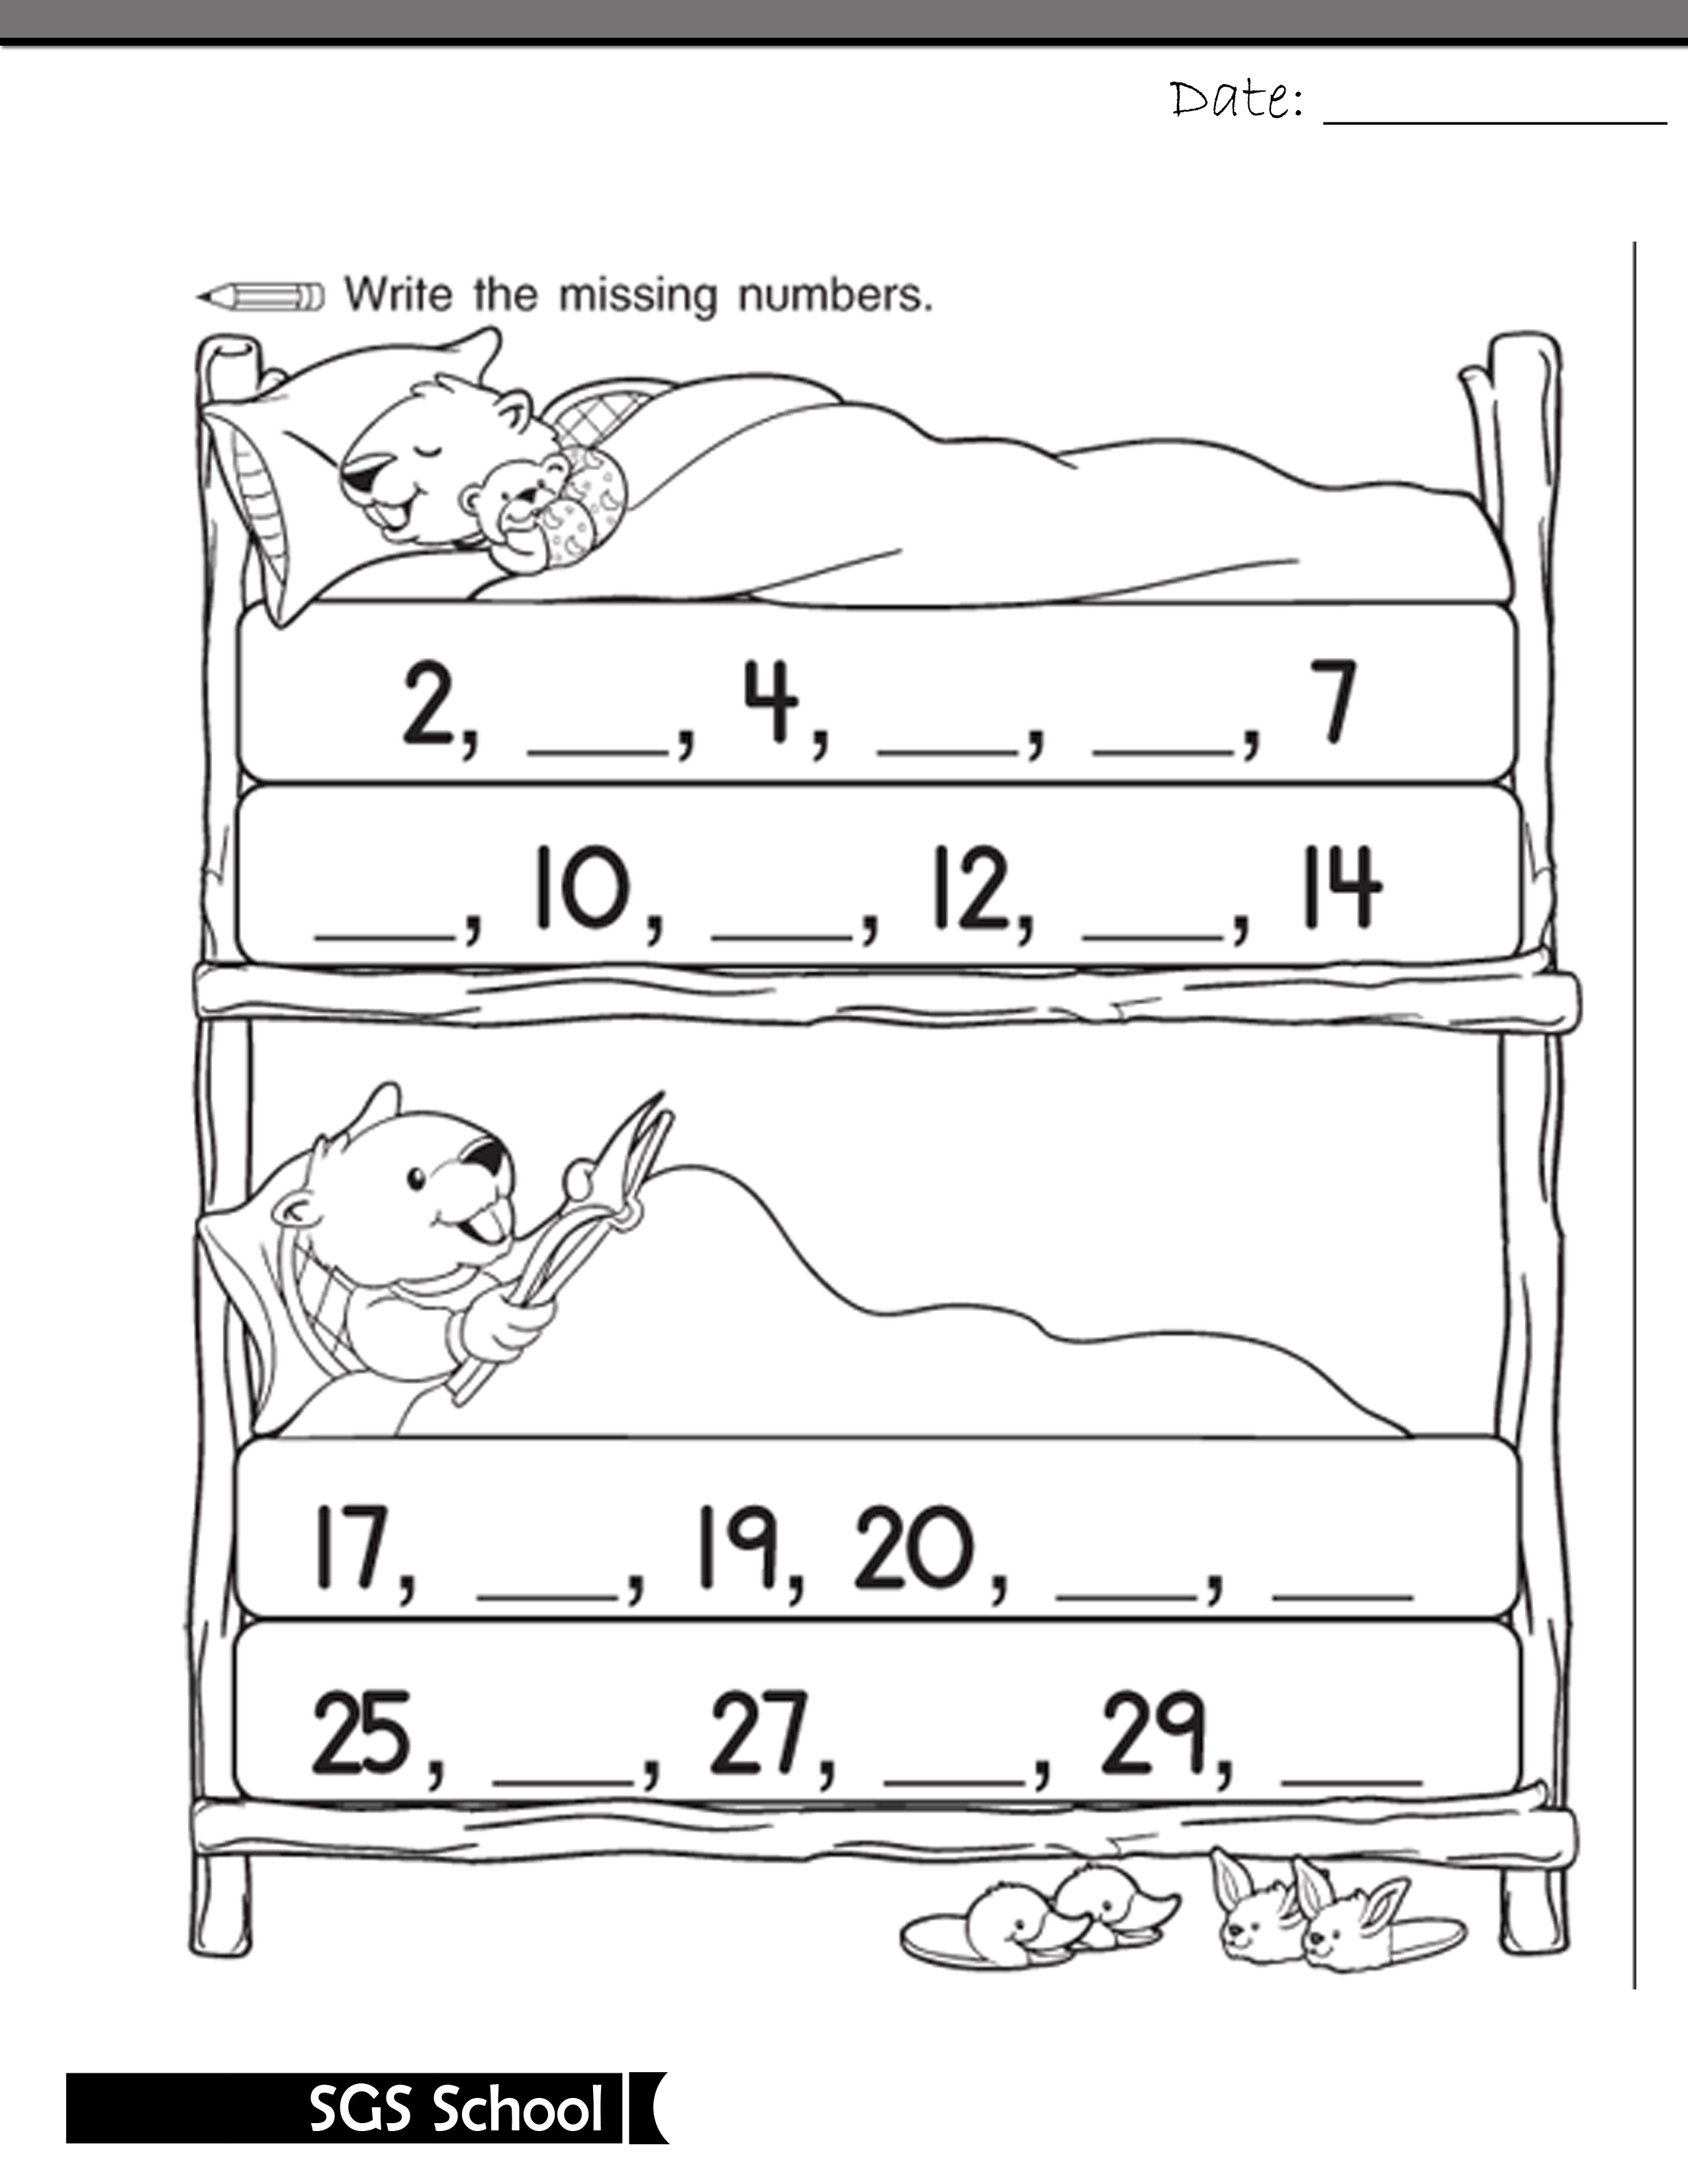 Printable Missing Number Worksheet For Class Kg 1 Shamim